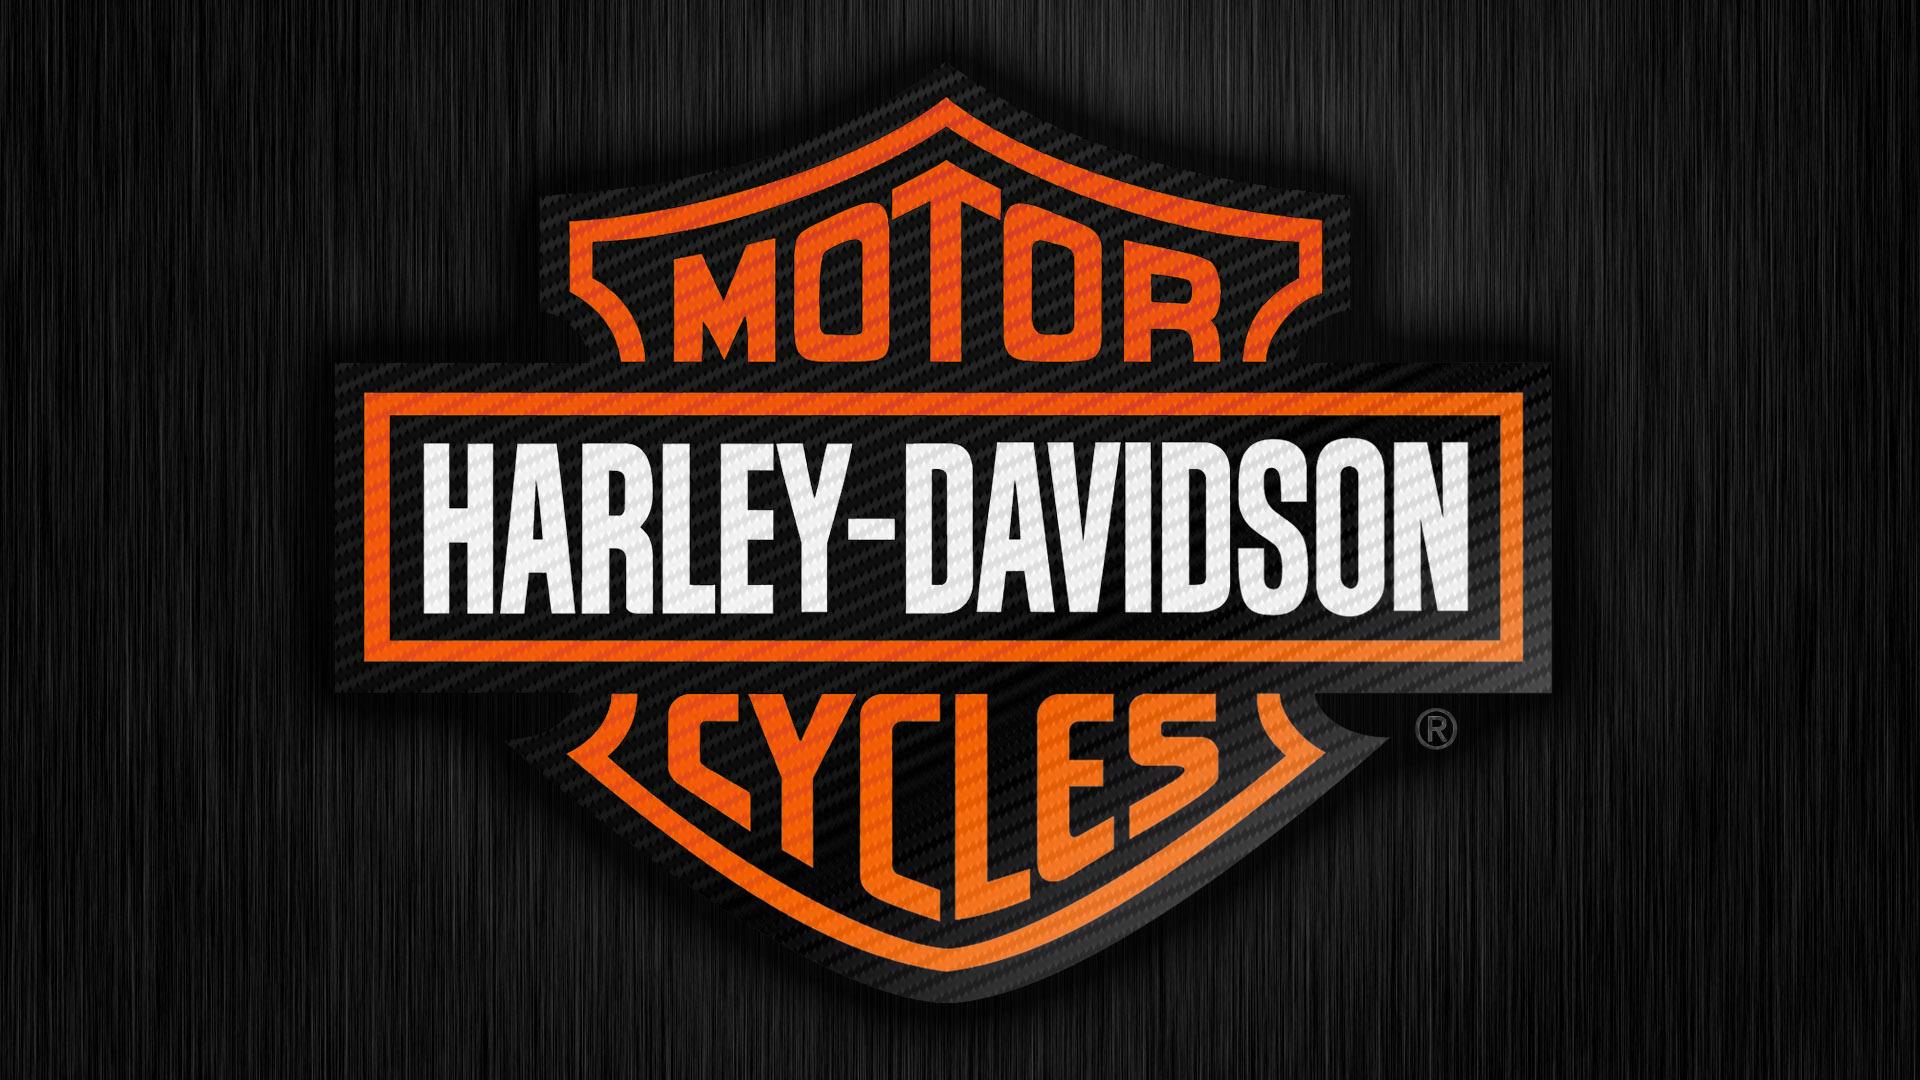 Harley Davidson Logo Wallpaper For Iphone 6 Image Gallery - HCPR